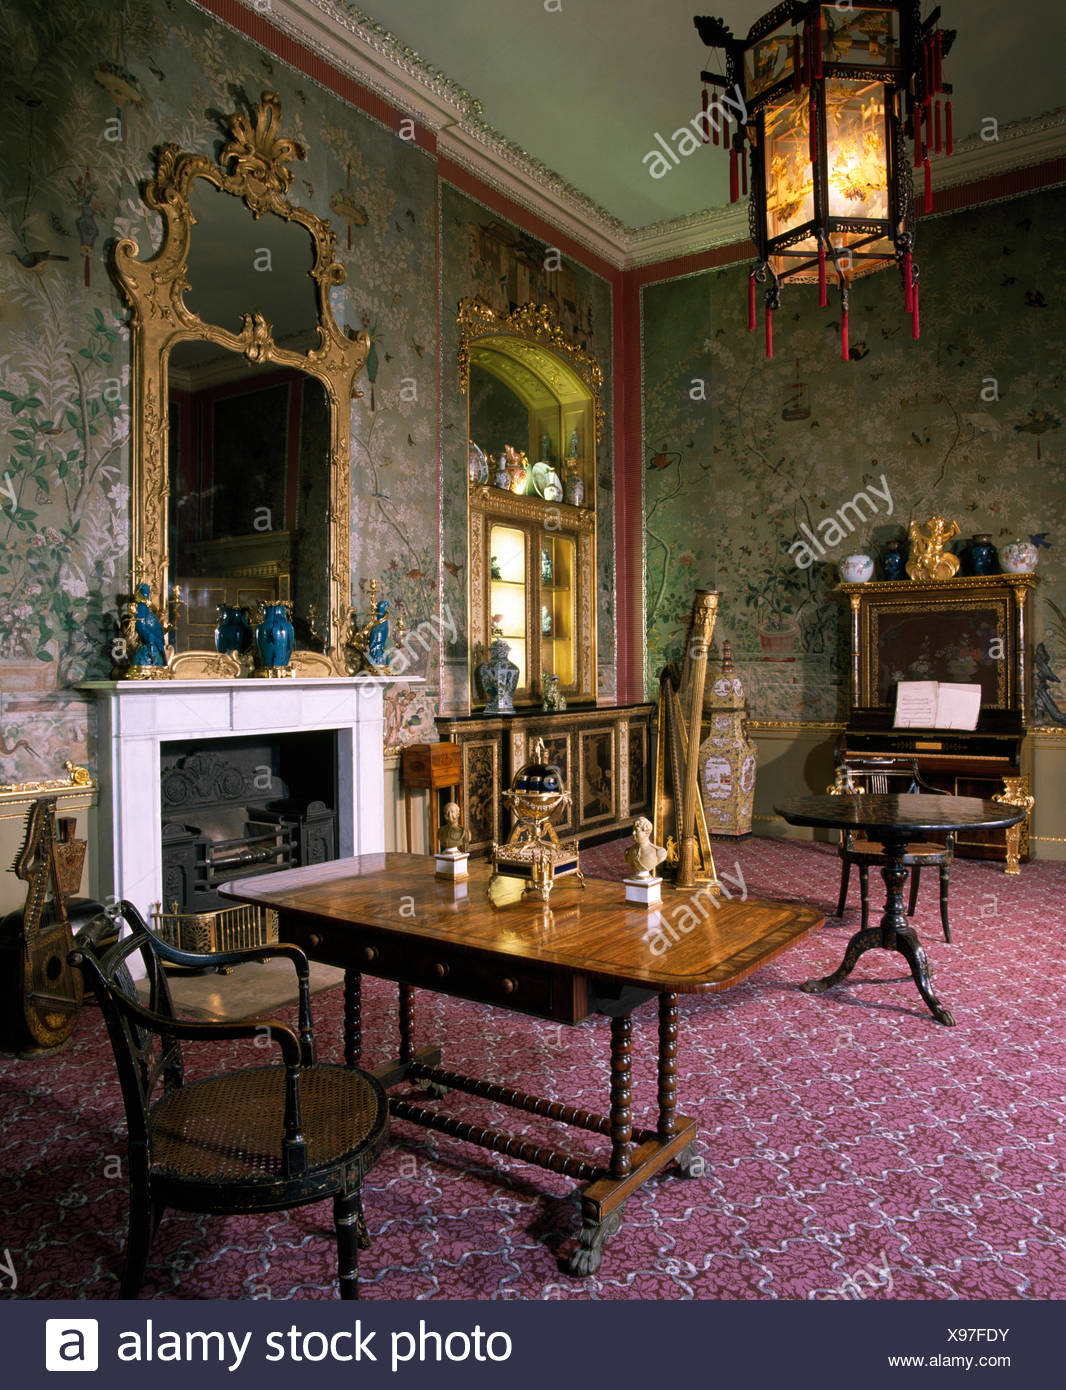 Antique furniture and lantern in old fashioned stately home drawing room - Antique Furniture And Lantern In Old Fashioned Stately Home Drawing